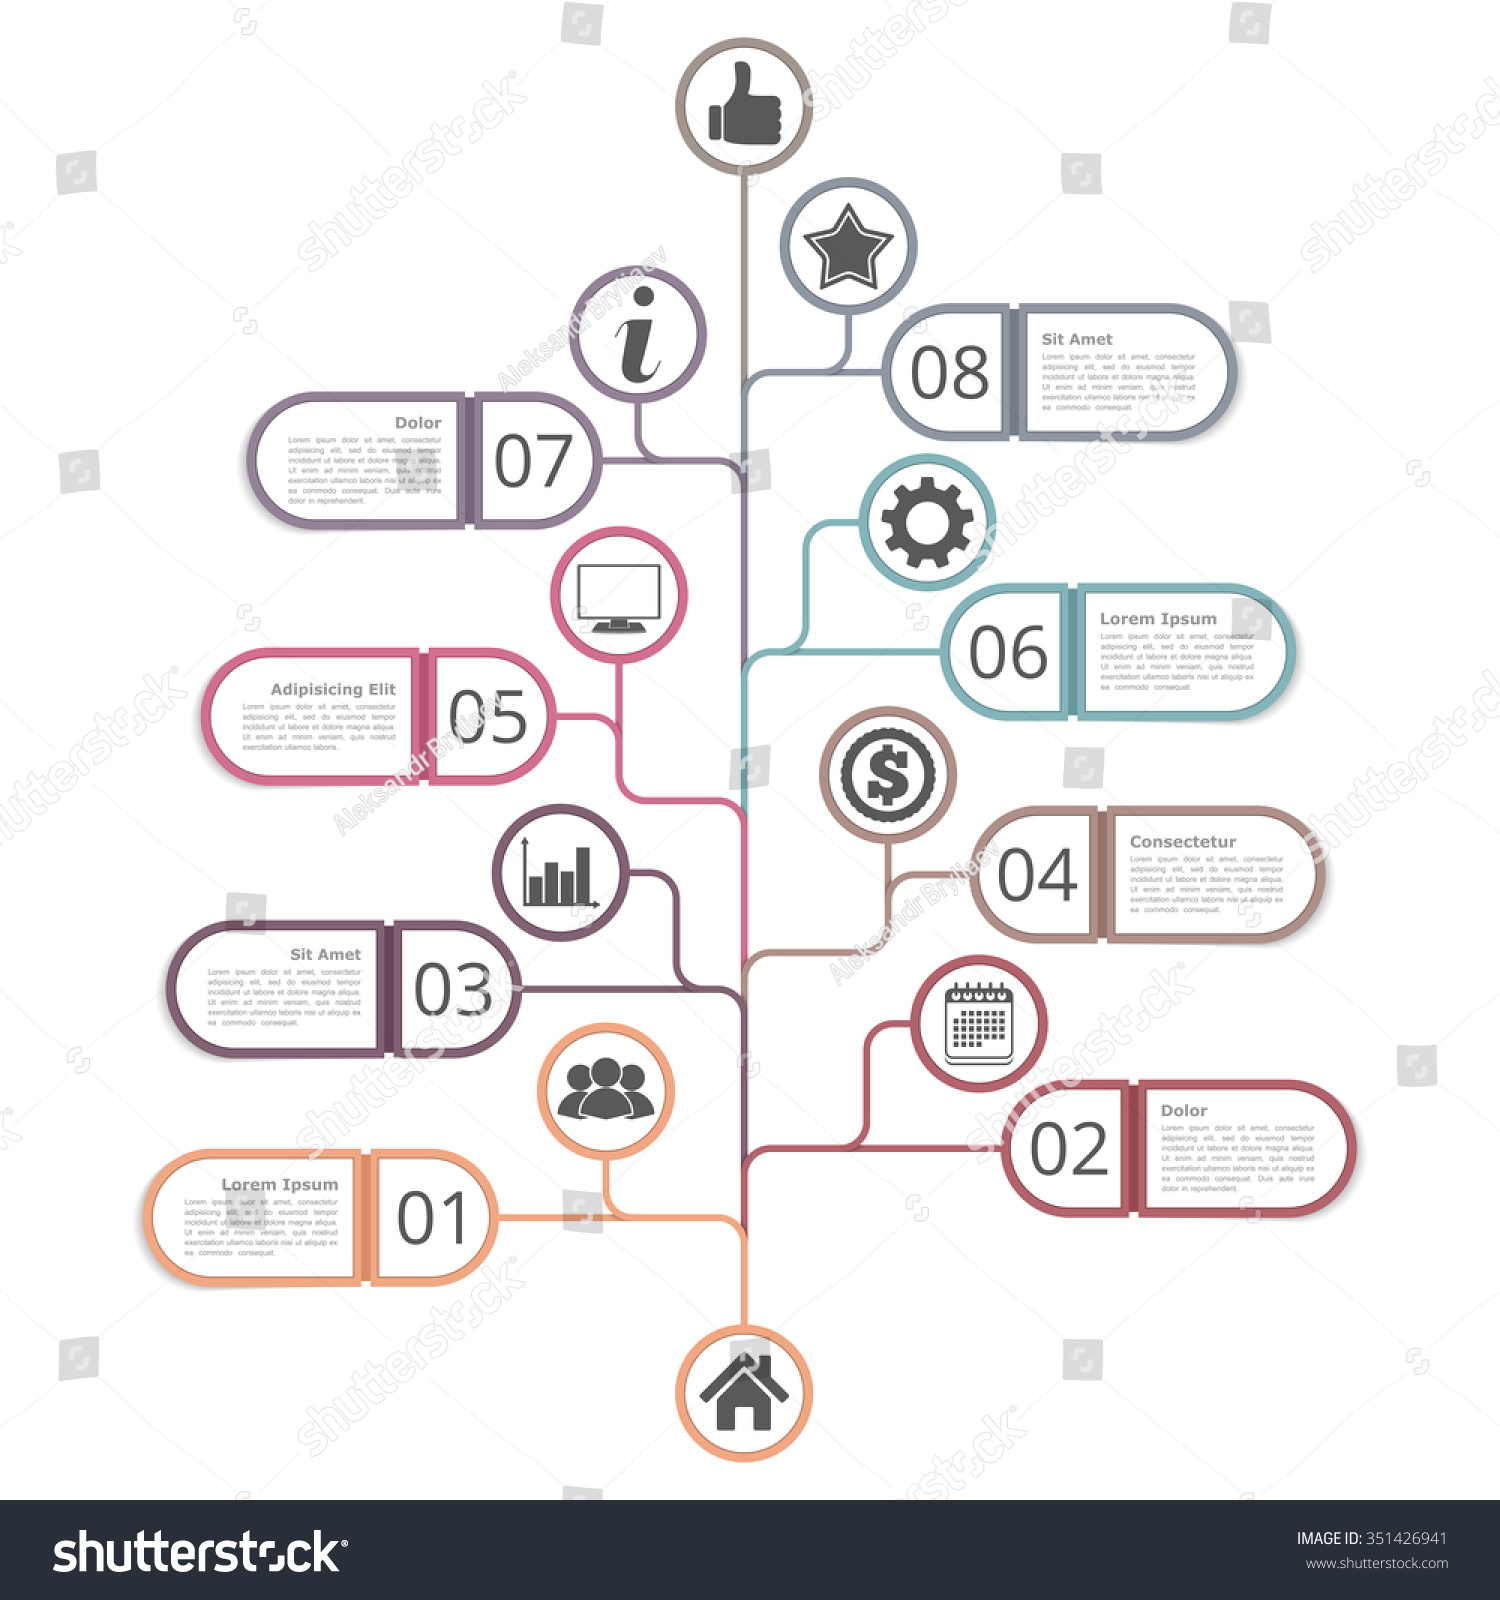 Tree Diagram Template With Numbers, Icons And Place For Your Text, Vector  Eps10 Illustration